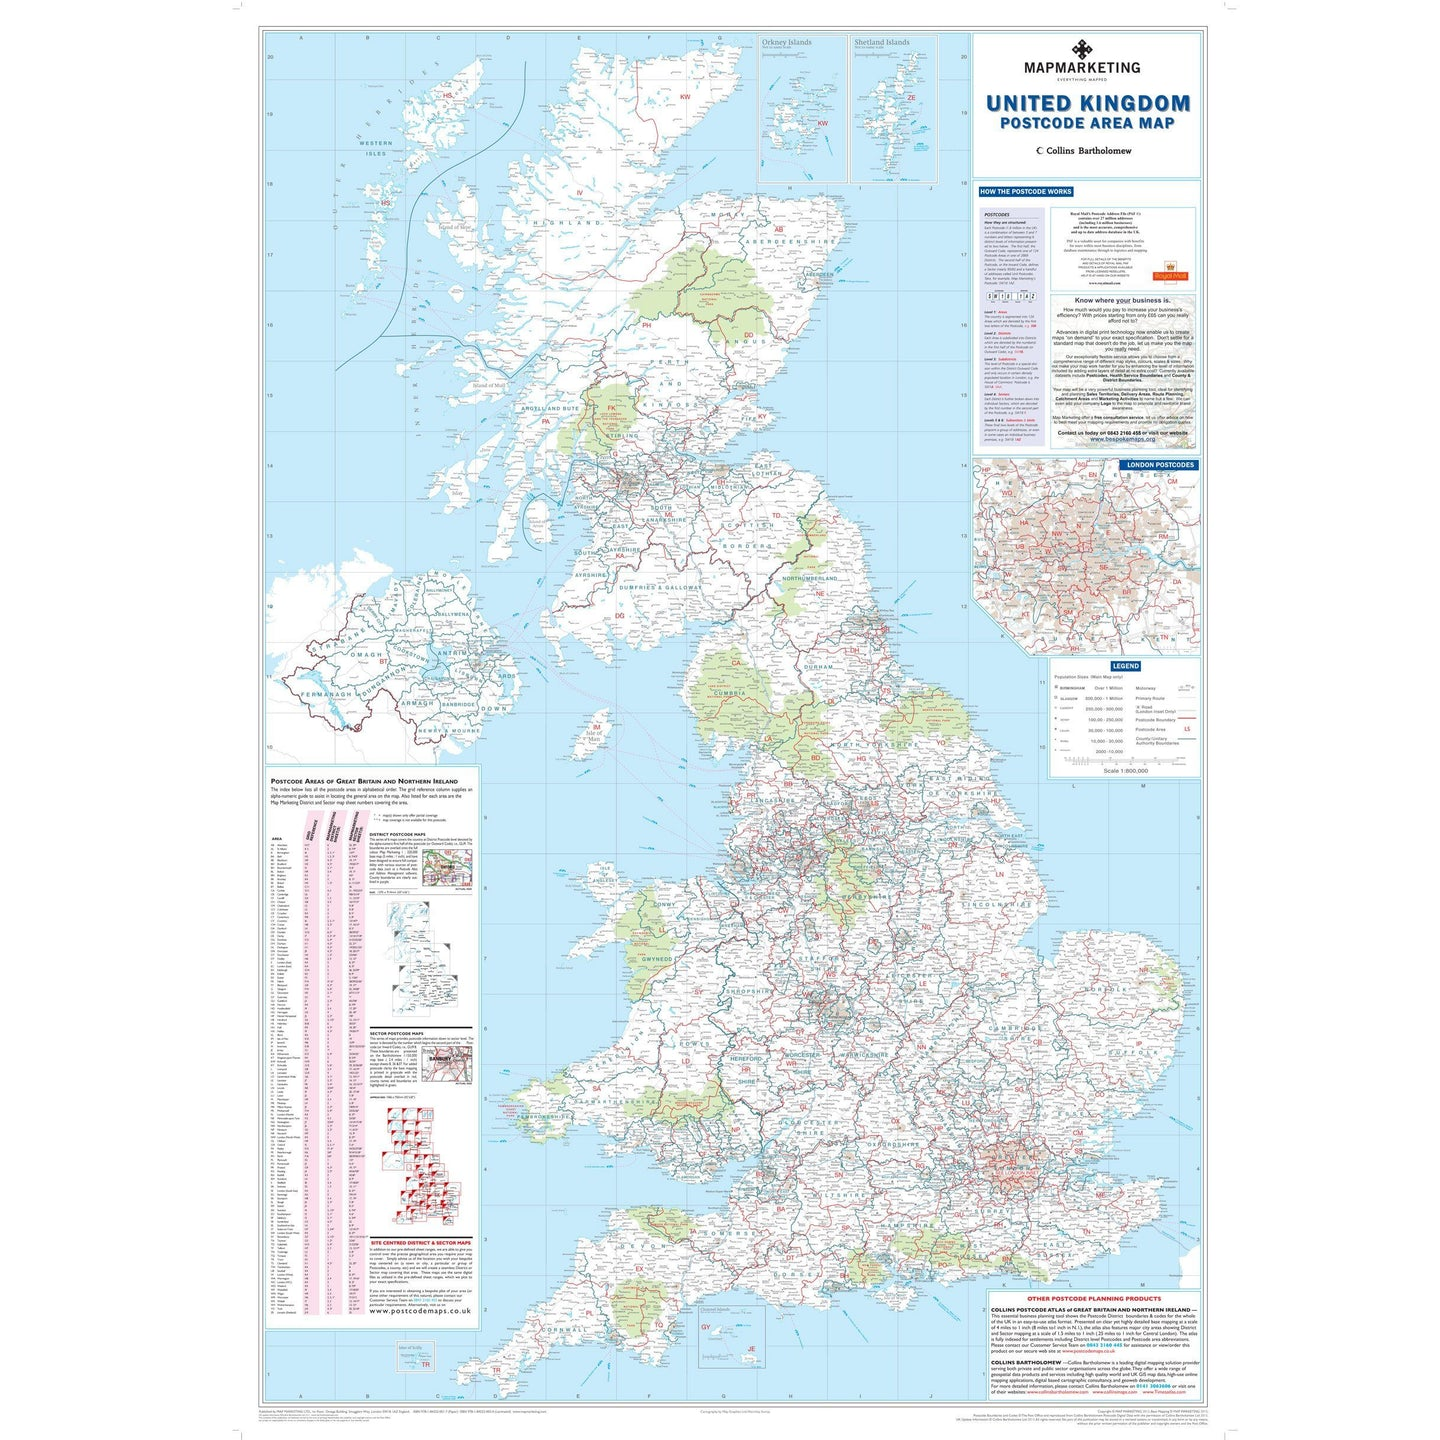 UK Postcode Wall Map of Great Britain & NI | Map Marketing